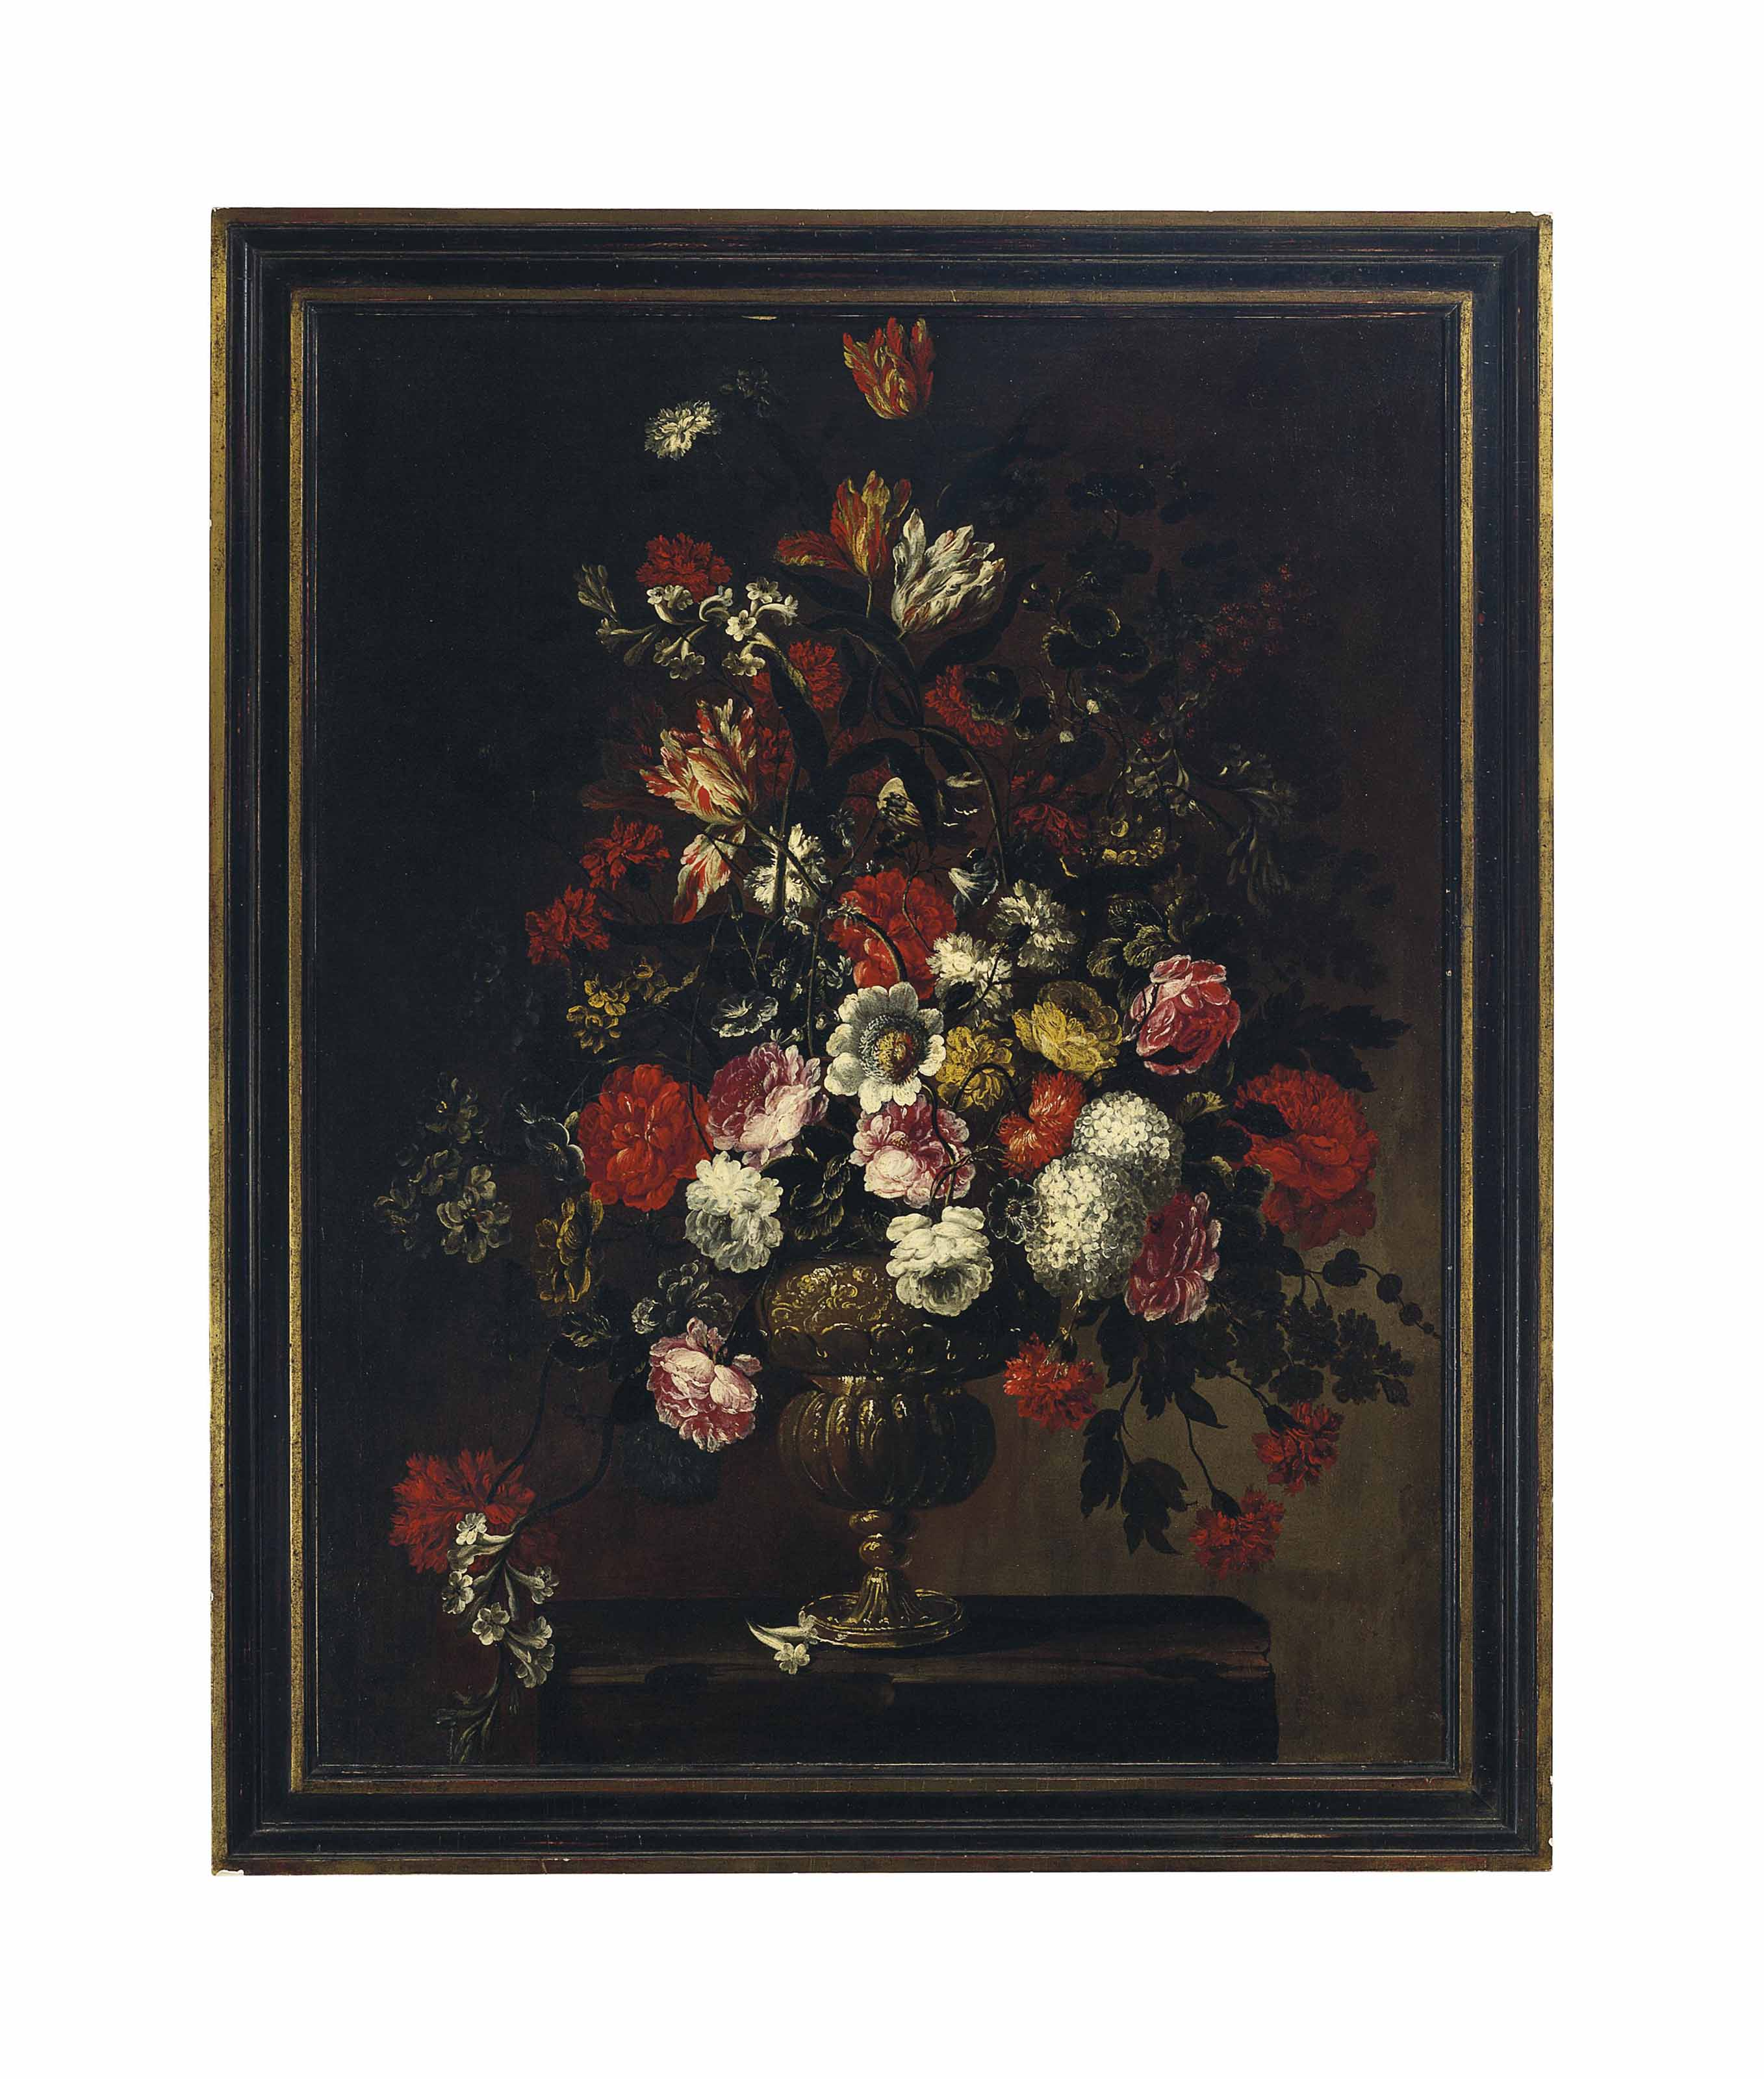 Roses, hydrangea, tulips and other flowers in an urn sitting on a table